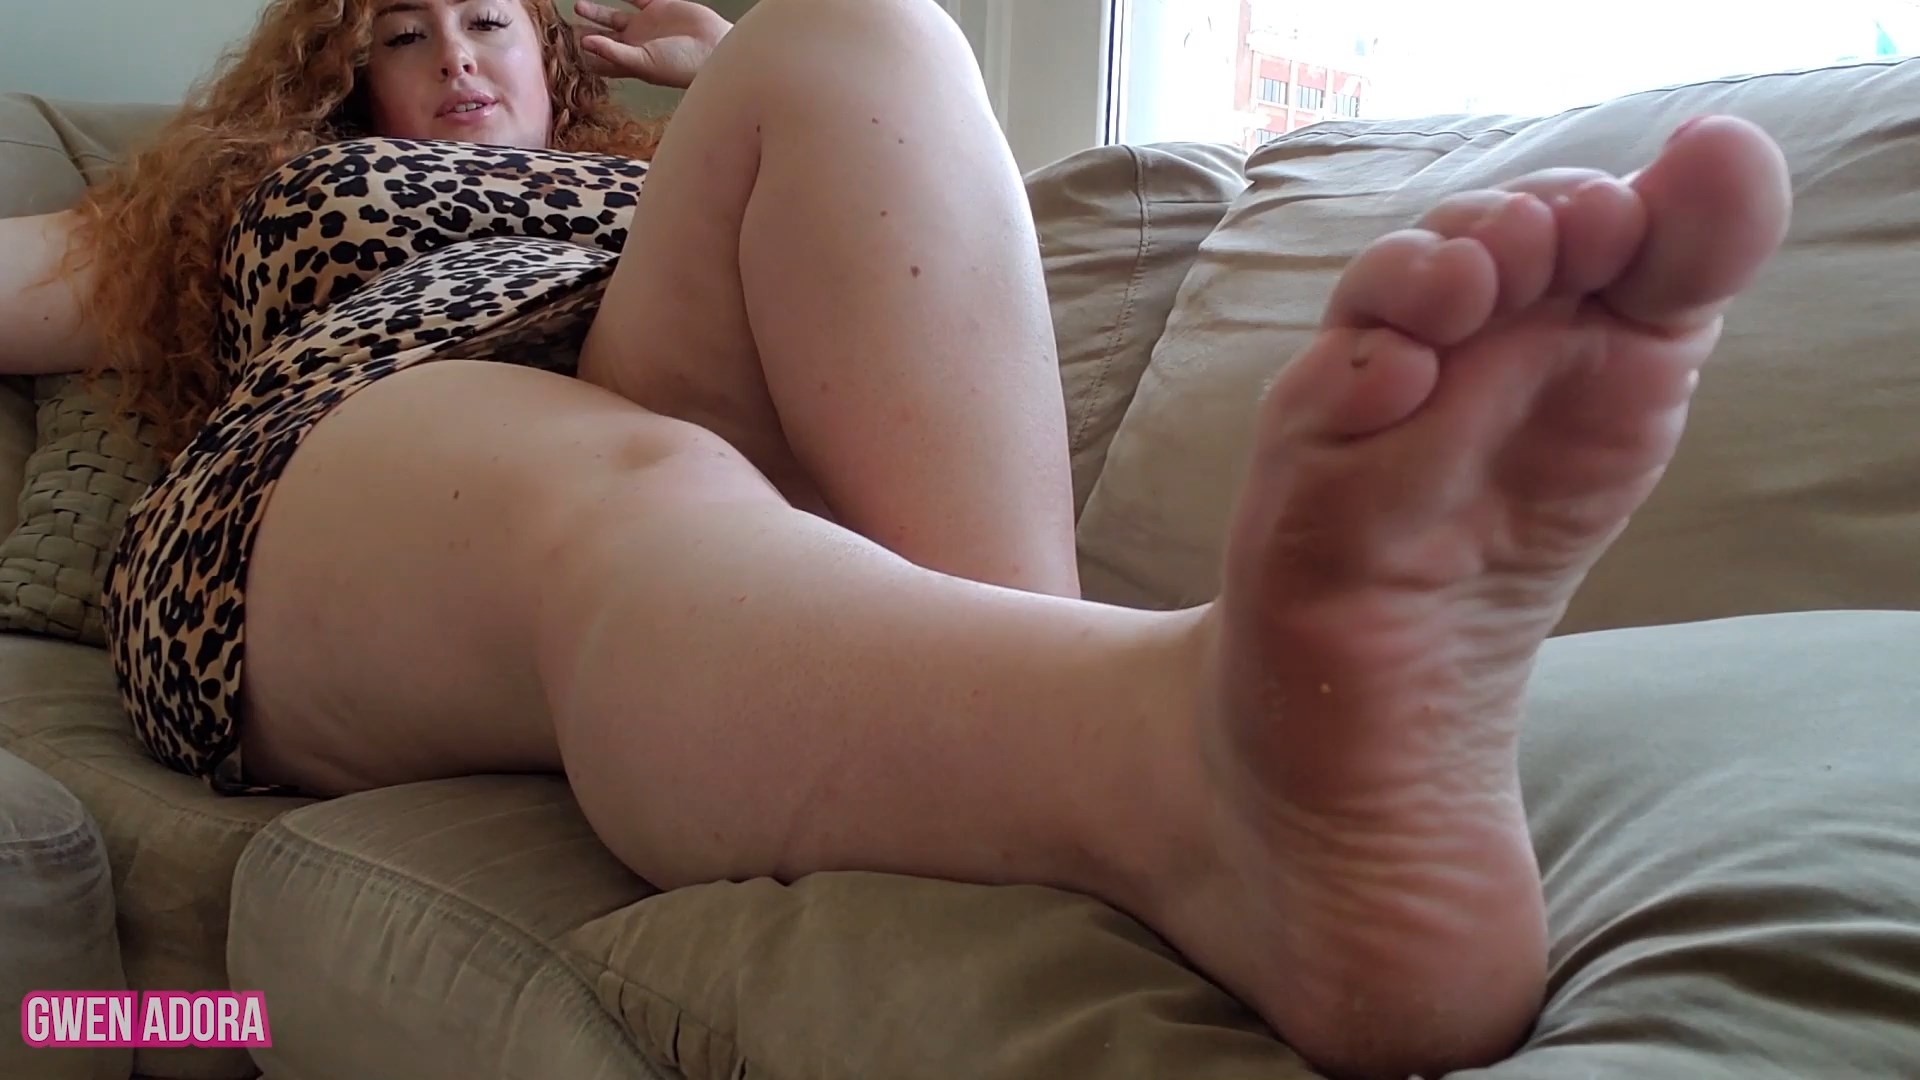 Gwen Adora - BBW Mommy Needs a Barefoot Foot Massage